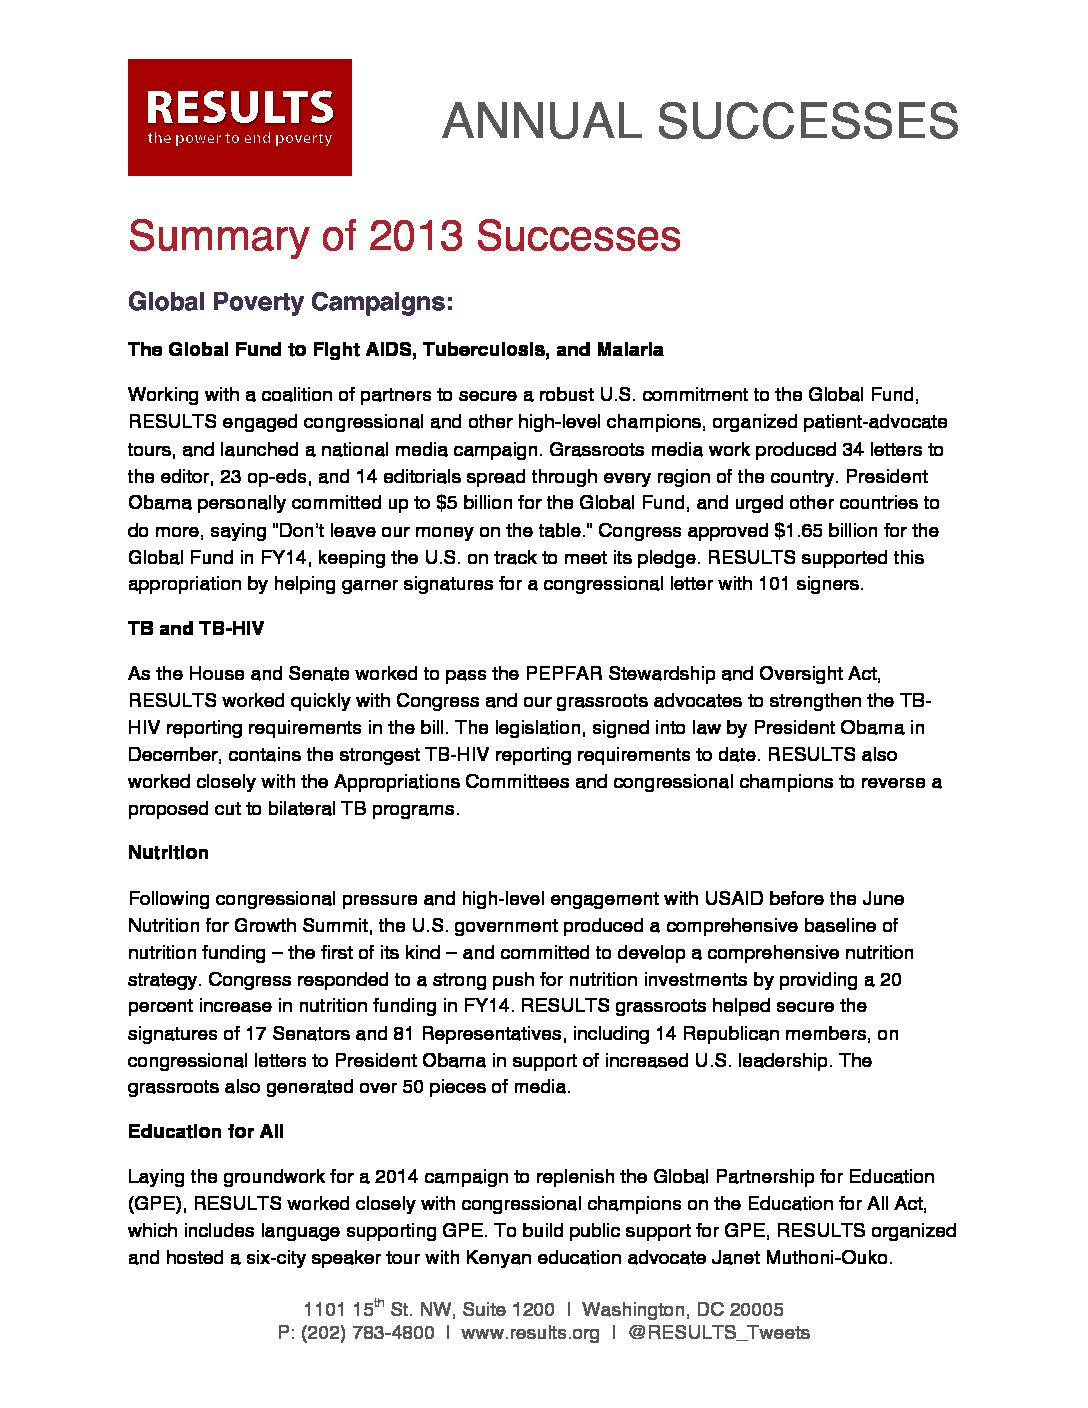 Annual Successes 2013